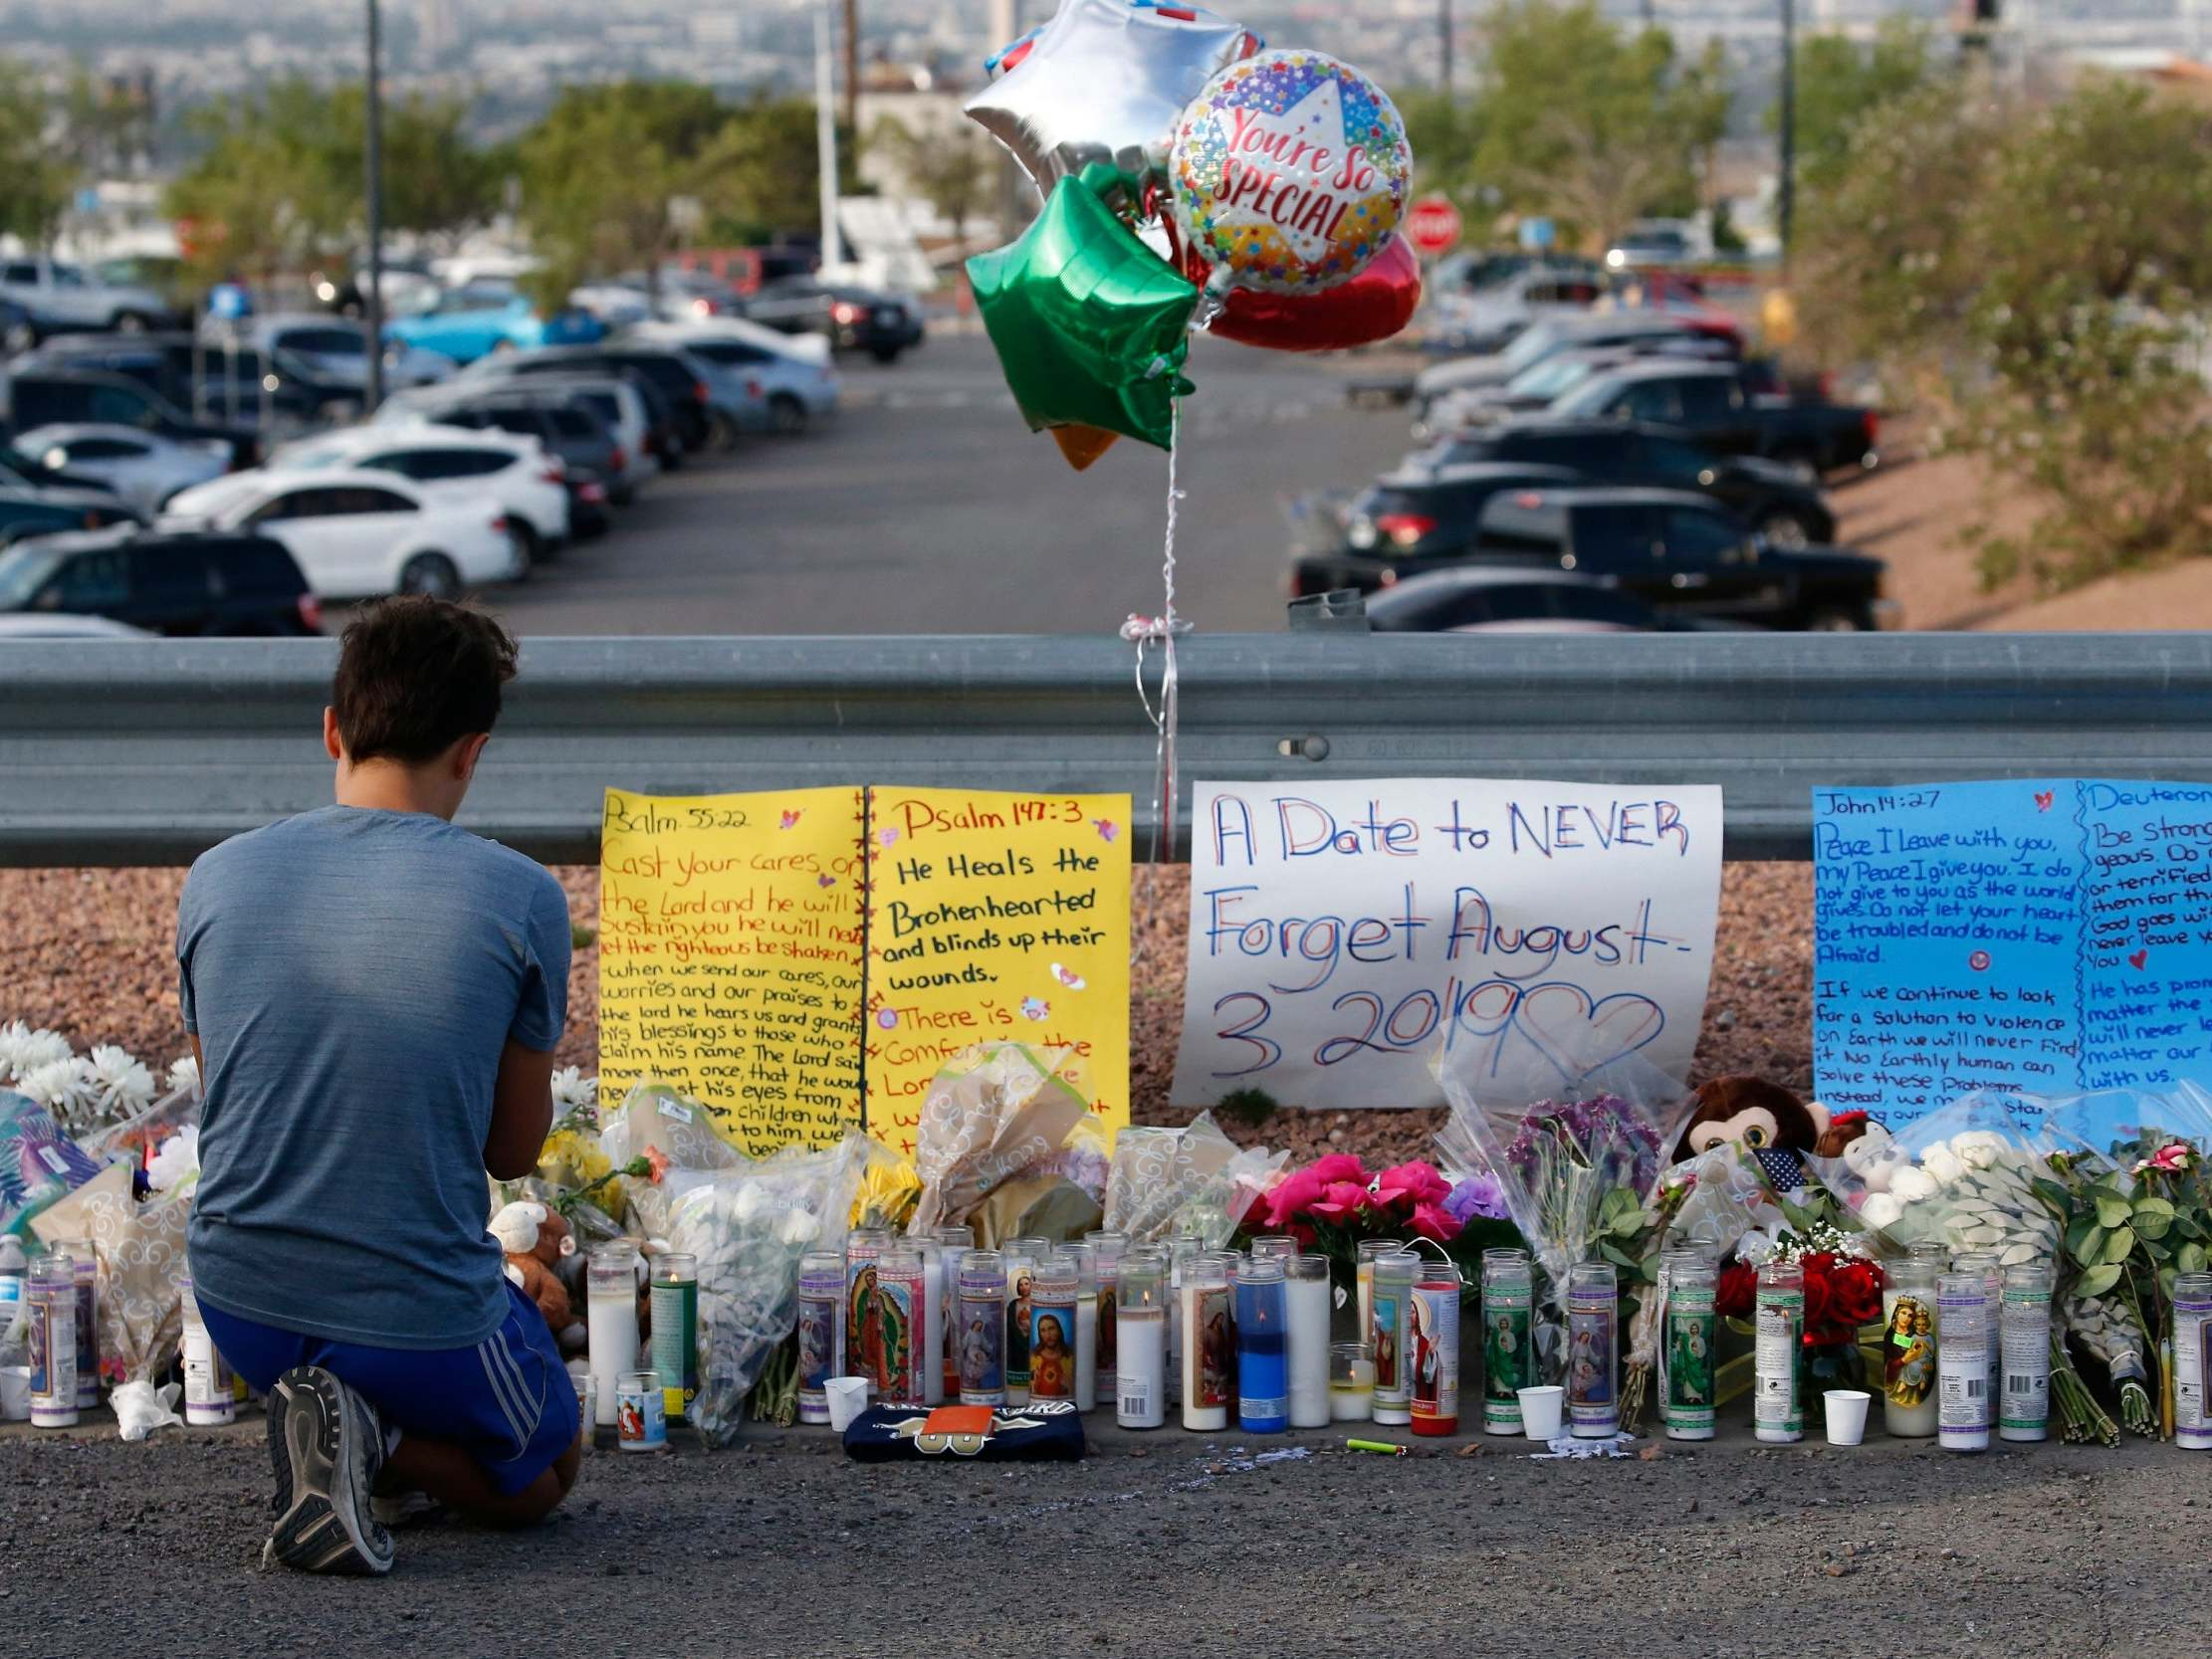 El Paso shooting: Trump administration cut programmes to